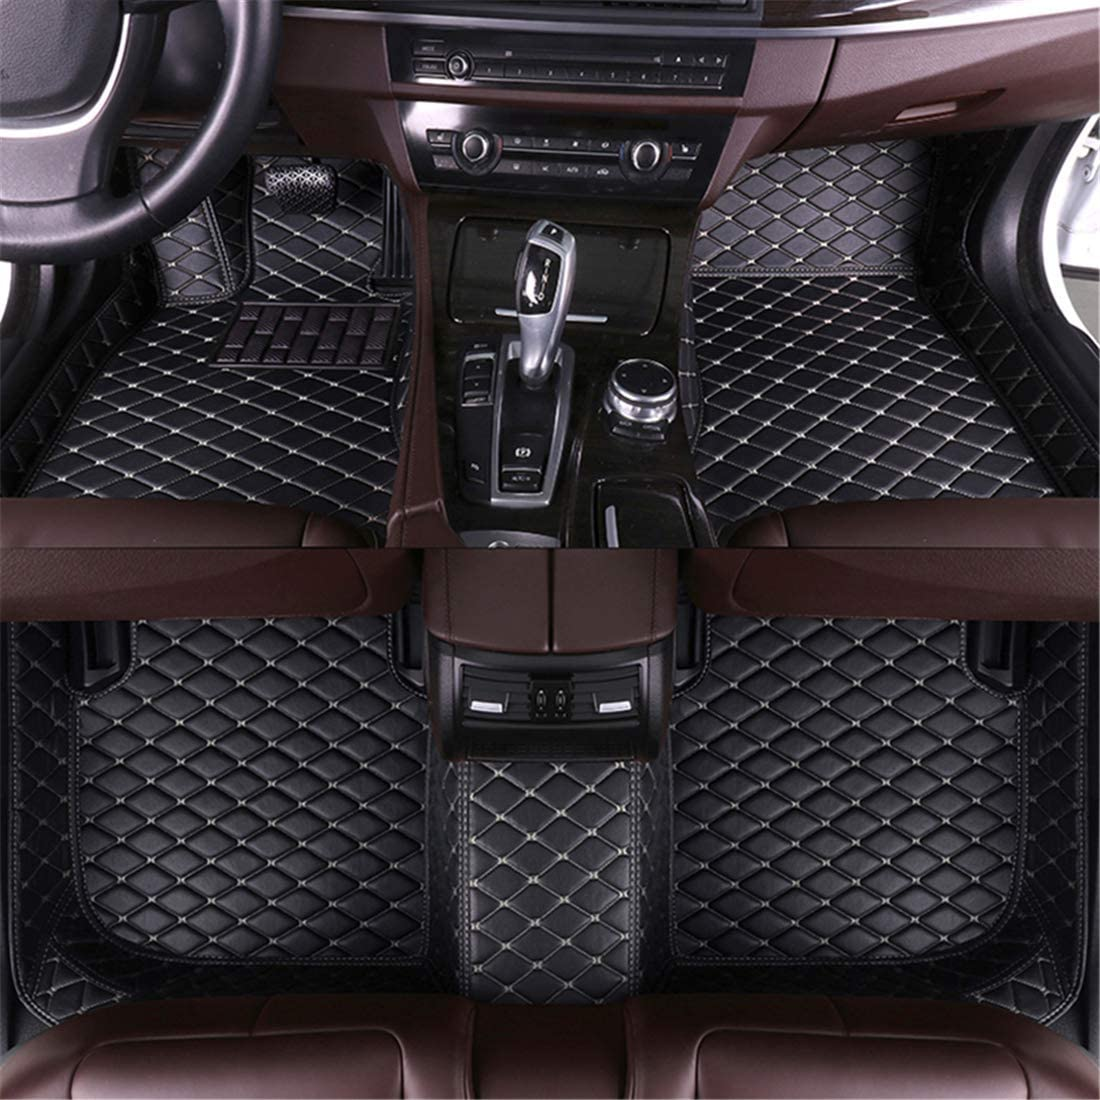 2021 autumn and winter new Muchkey car Floor Mats fit for Chevrolet Price reduction 2016 F Malibu Chevy